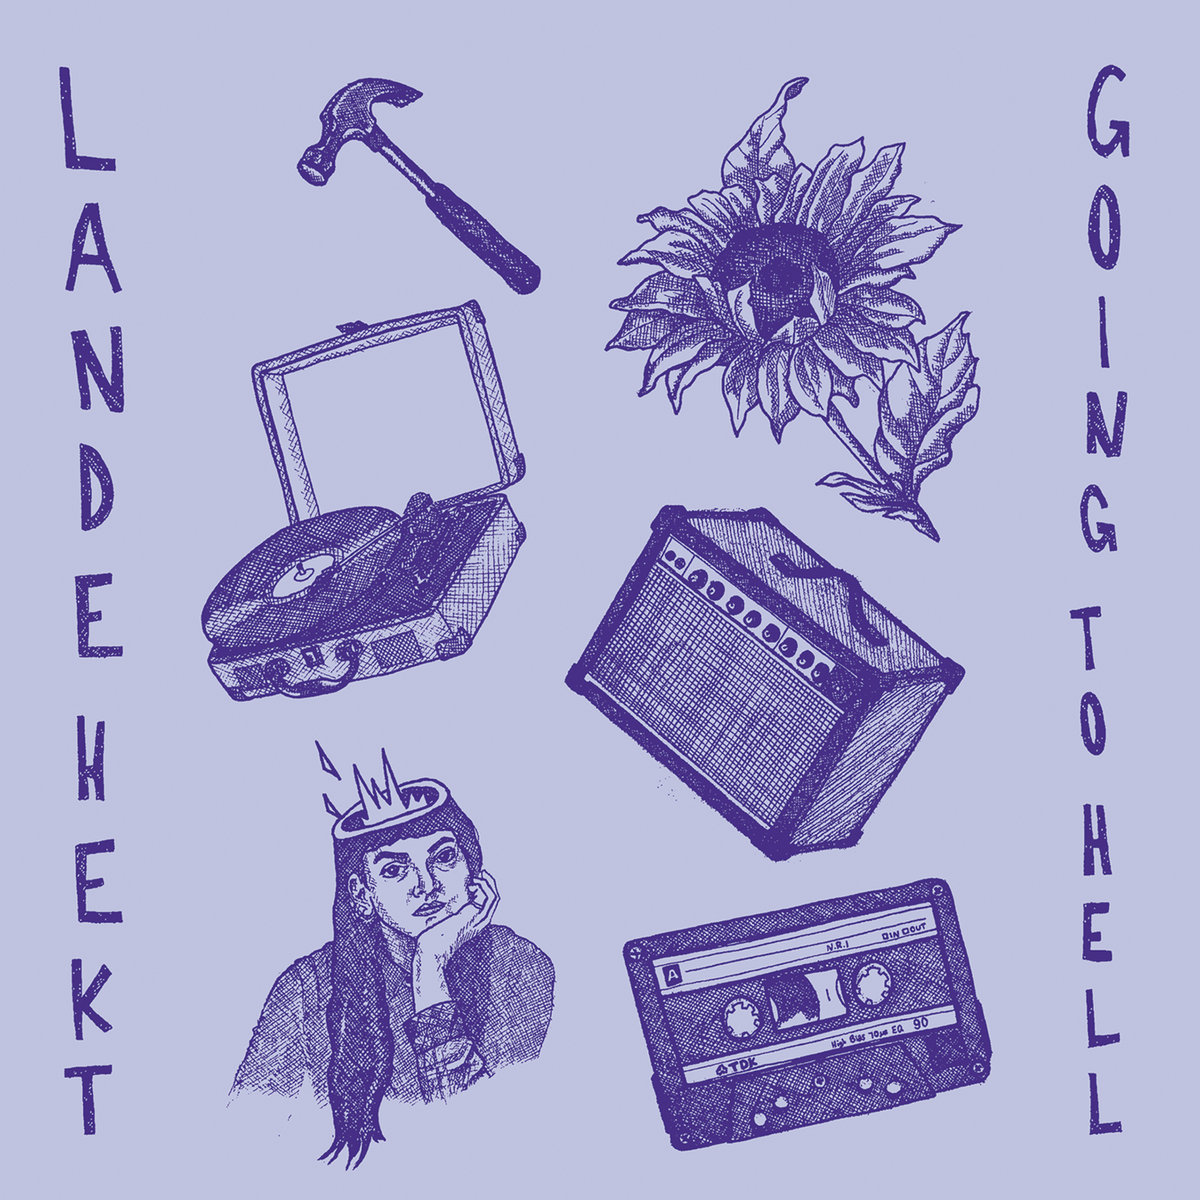 Lande Hekt - Going To Hell LP / CD